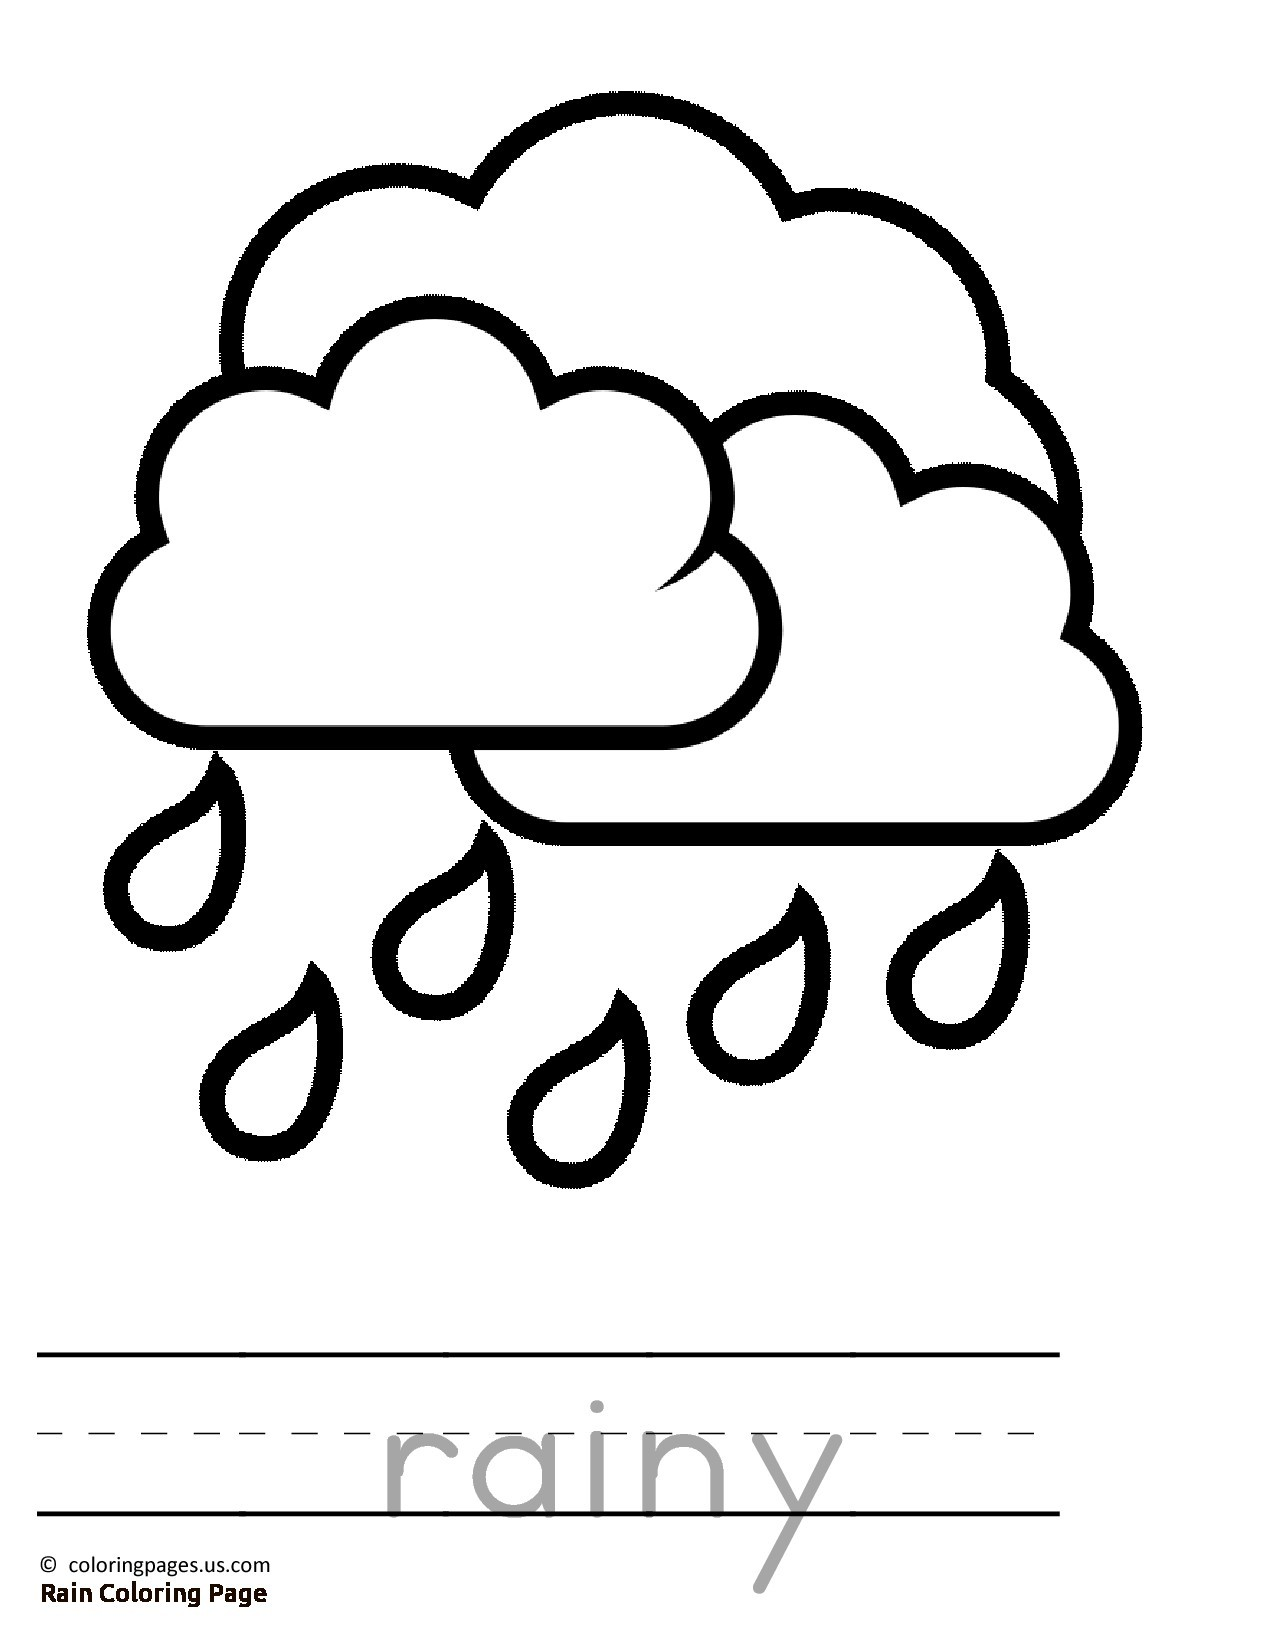 Stratus Cloud Drawing at GetDrawings.com | Free for personal use ...